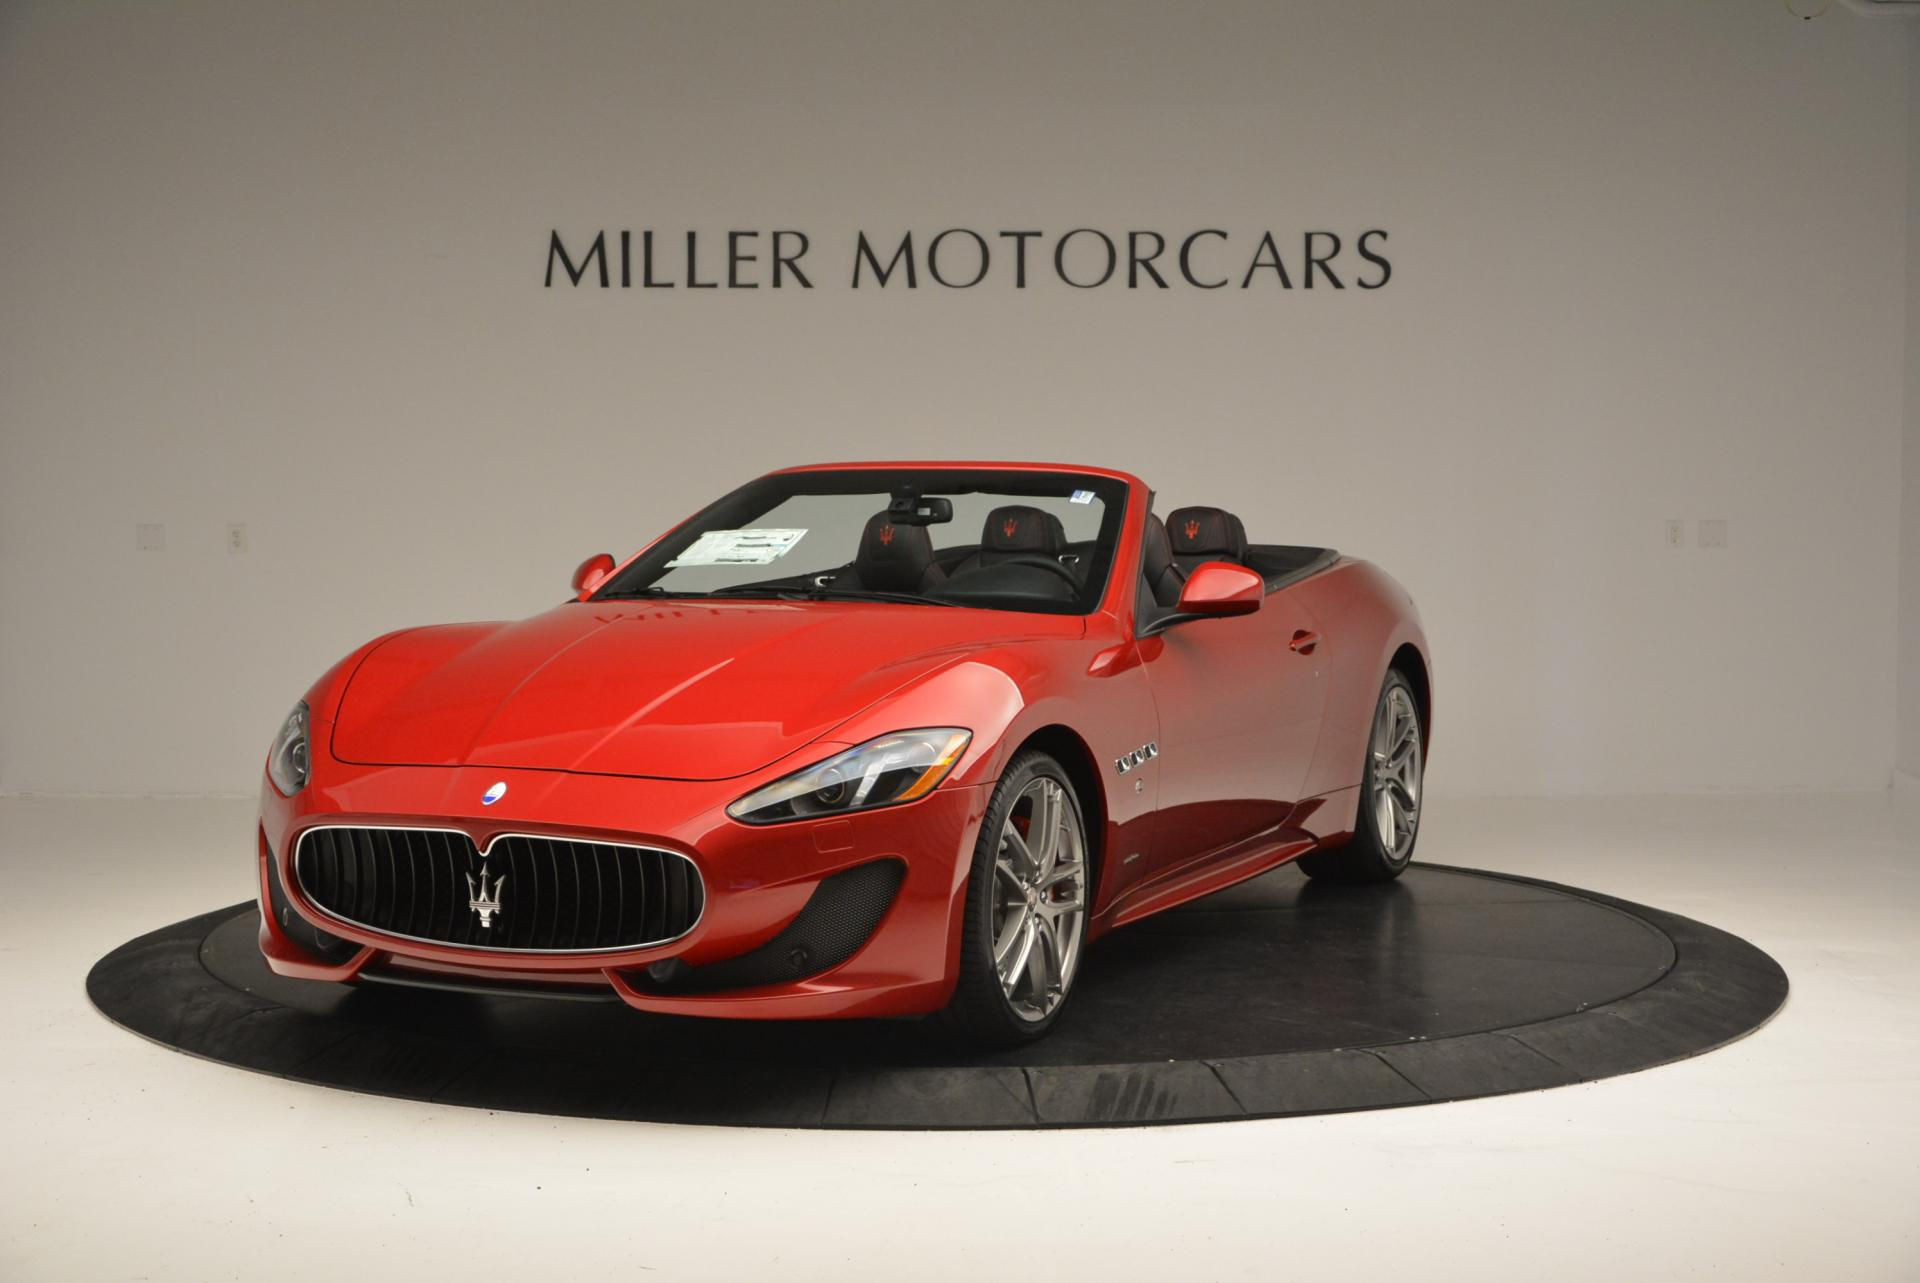 New 2017 Maserati GranTurismo Cab Sport for sale Sold at Rolls-Royce Motor Cars Greenwich in Greenwich CT 06830 1